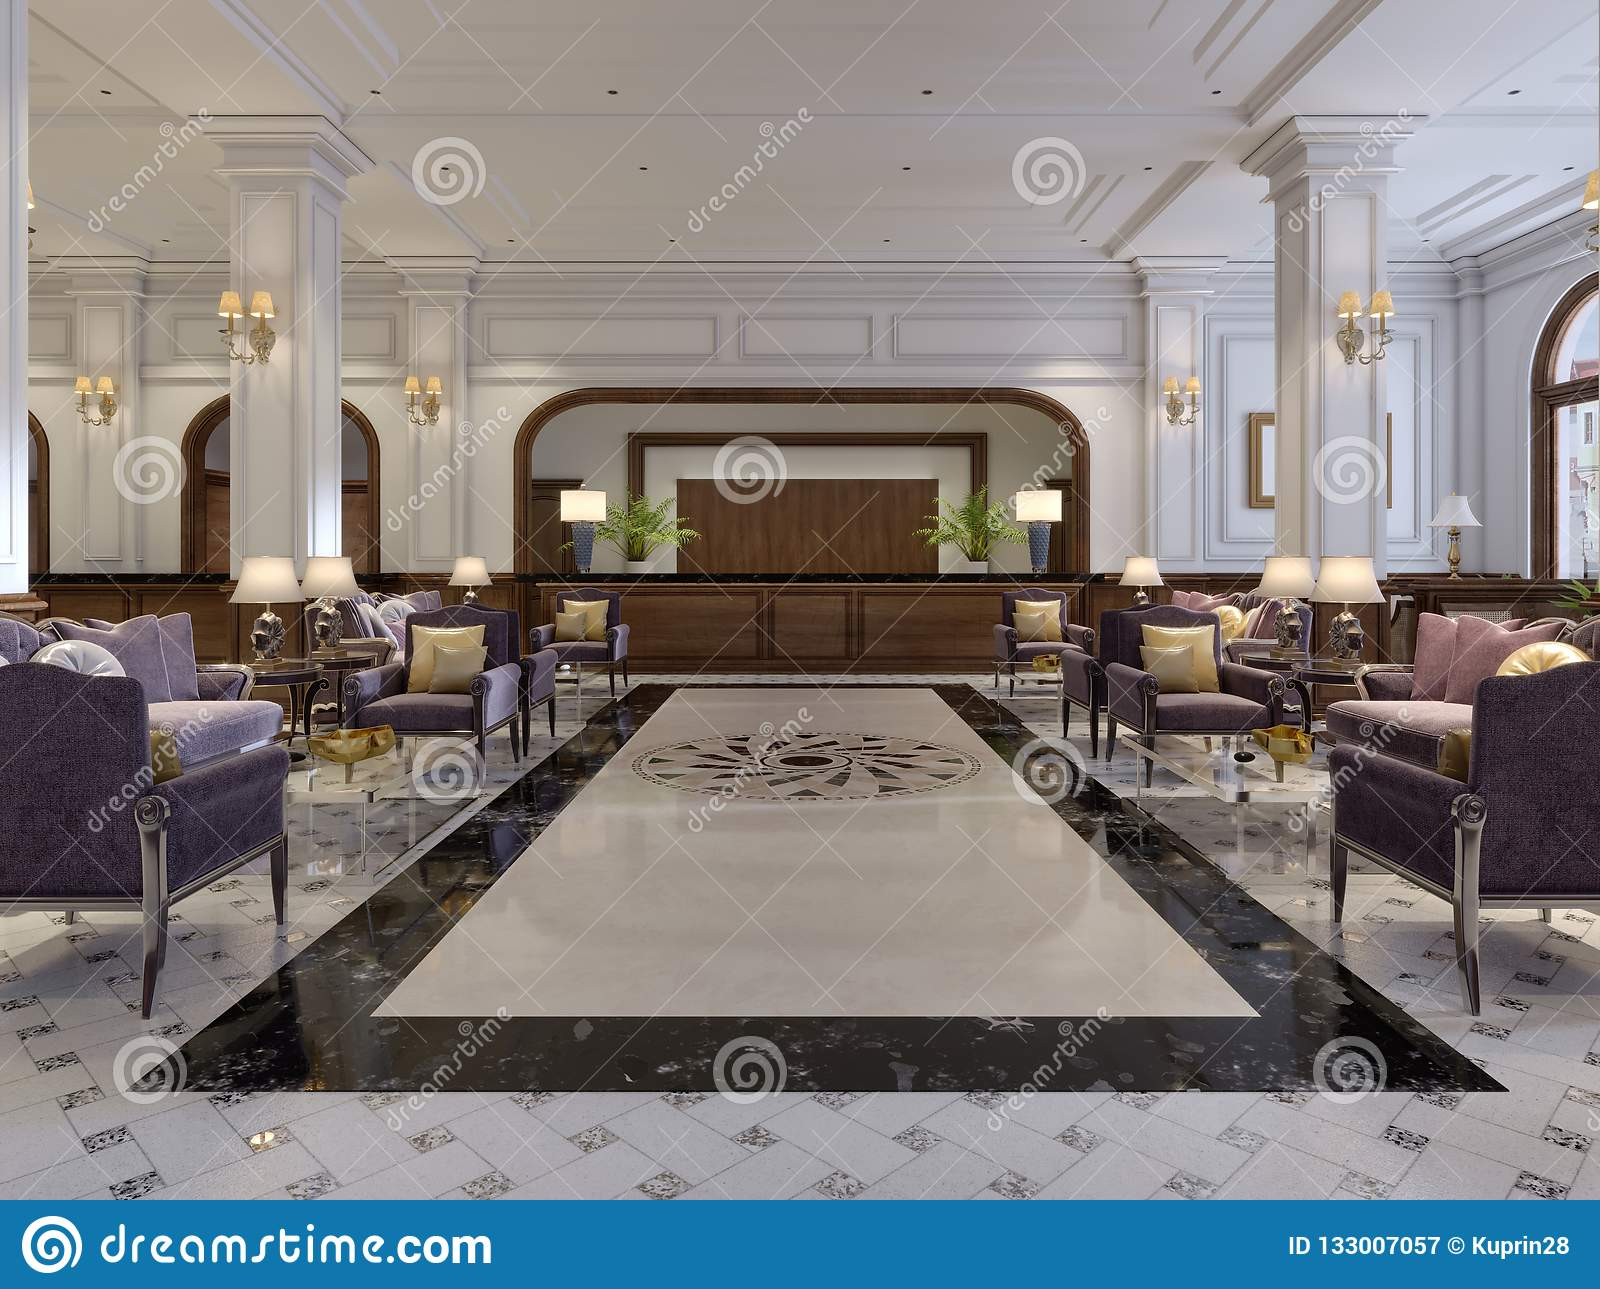 Luxury Hallway Reception In Classic Hotel Interior Stock Illustration Illustration Of Contemporary Lounge 133007057